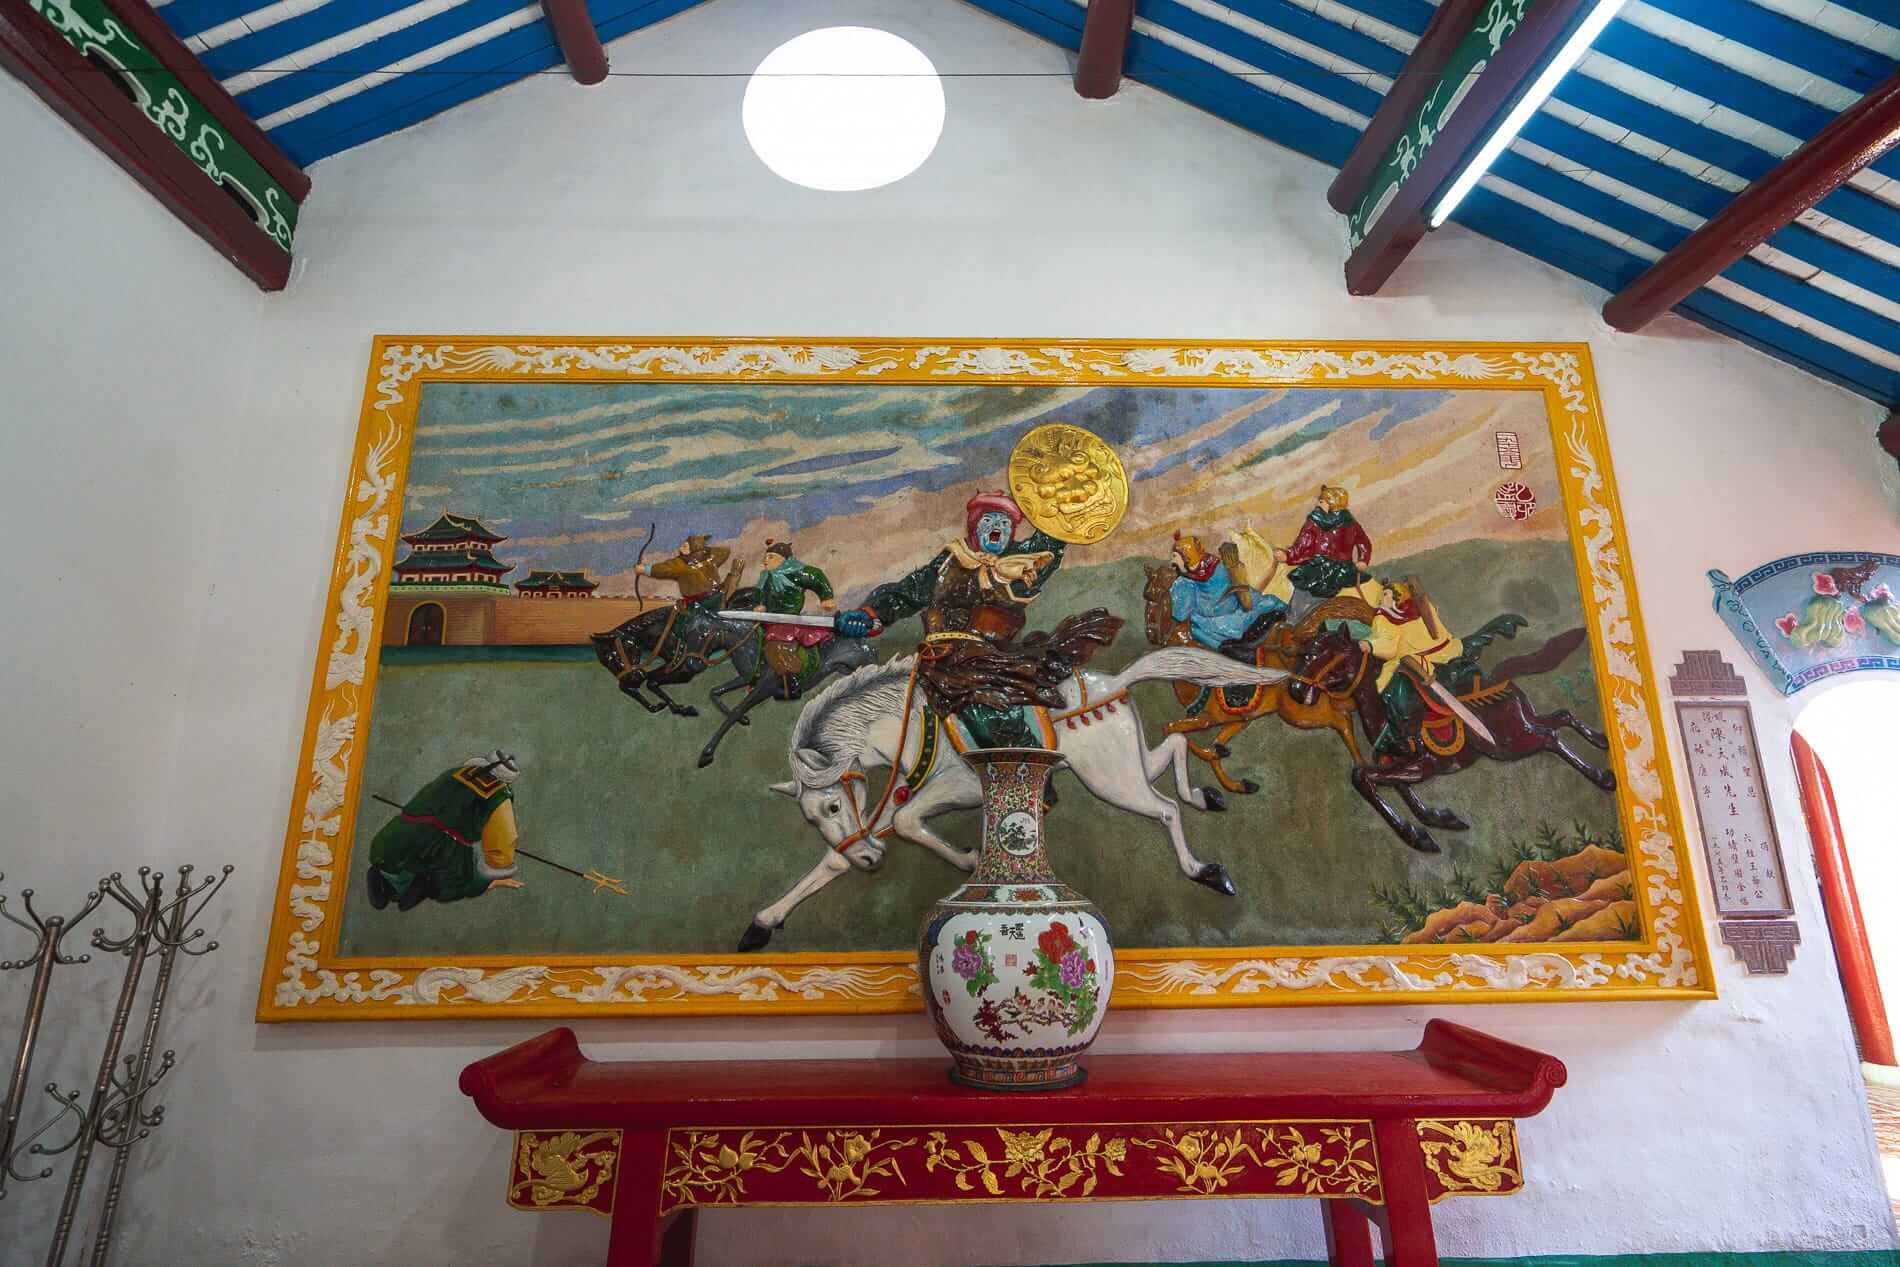 A large lacquered painting - Hoi An Temples and Pagodas